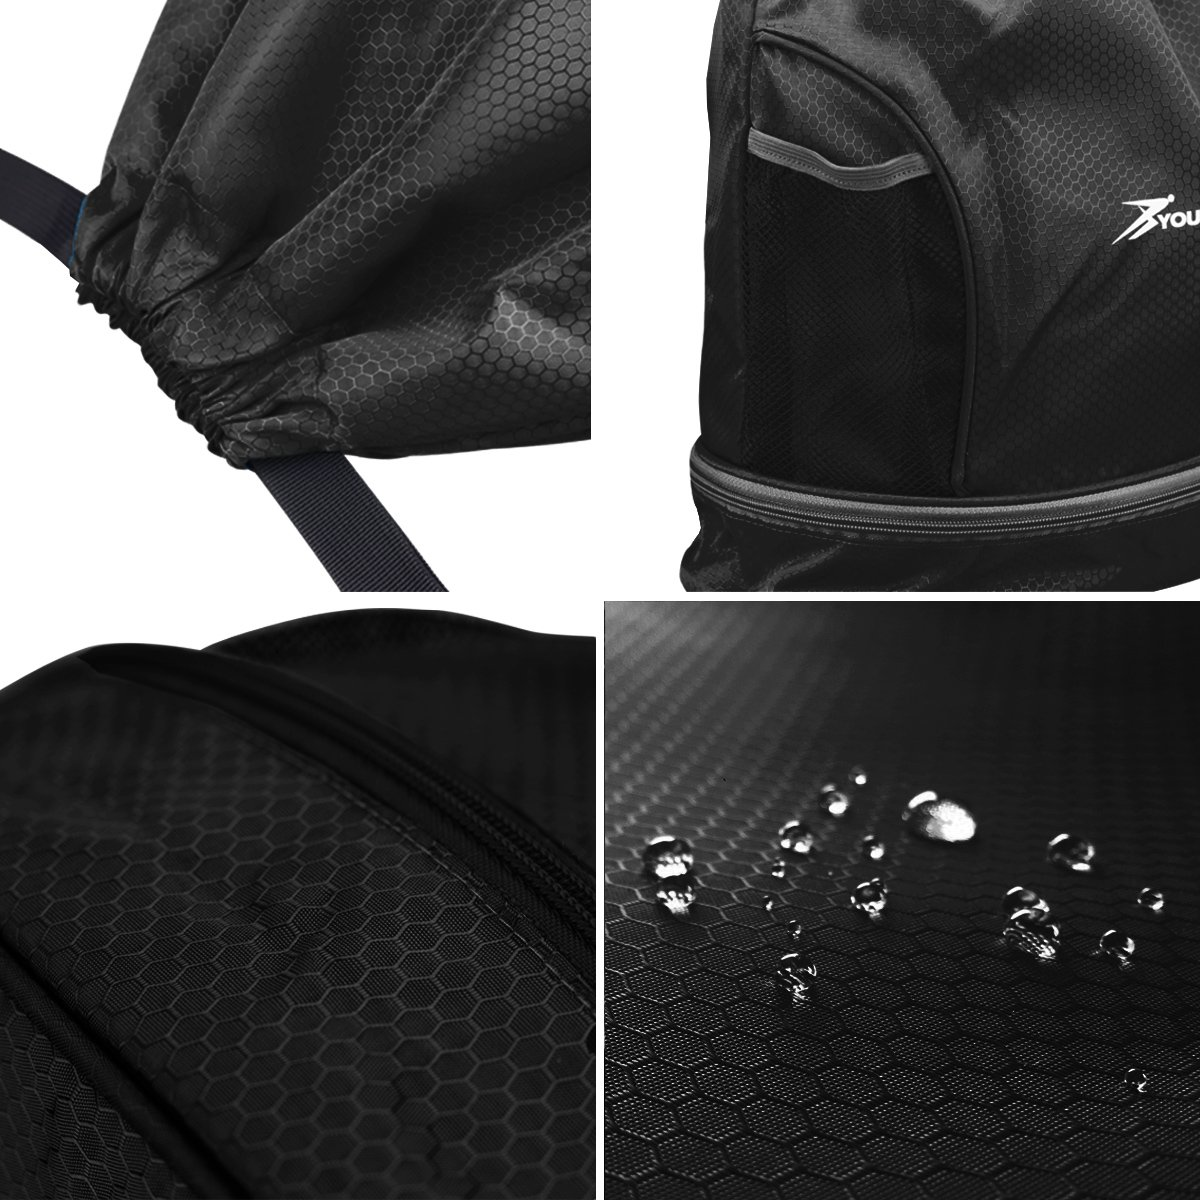 YOULERBU Gym Drawstring Bag, Sports Backpack with Shoe Compartment, Swim Bag with Wet Dry Compartments for Women Men (Black) by YOULERBU (Image #5)